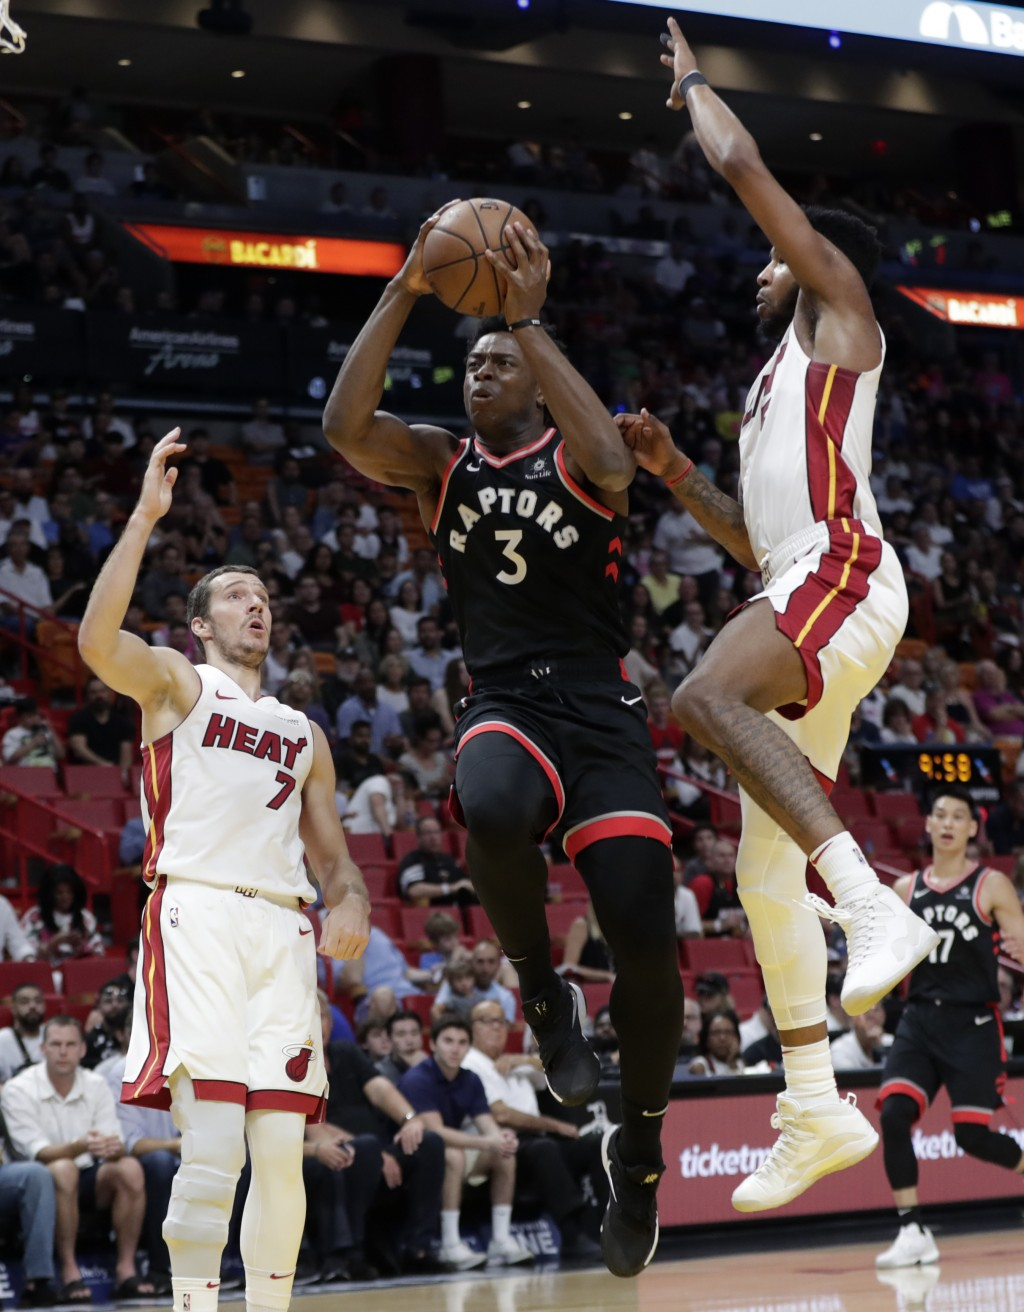 Toronto Raptors forward OG Anunoby (3) droves to the basket as Miami Heat forward Derrick Jones Jr., right, defends during the first half of an NBA ba